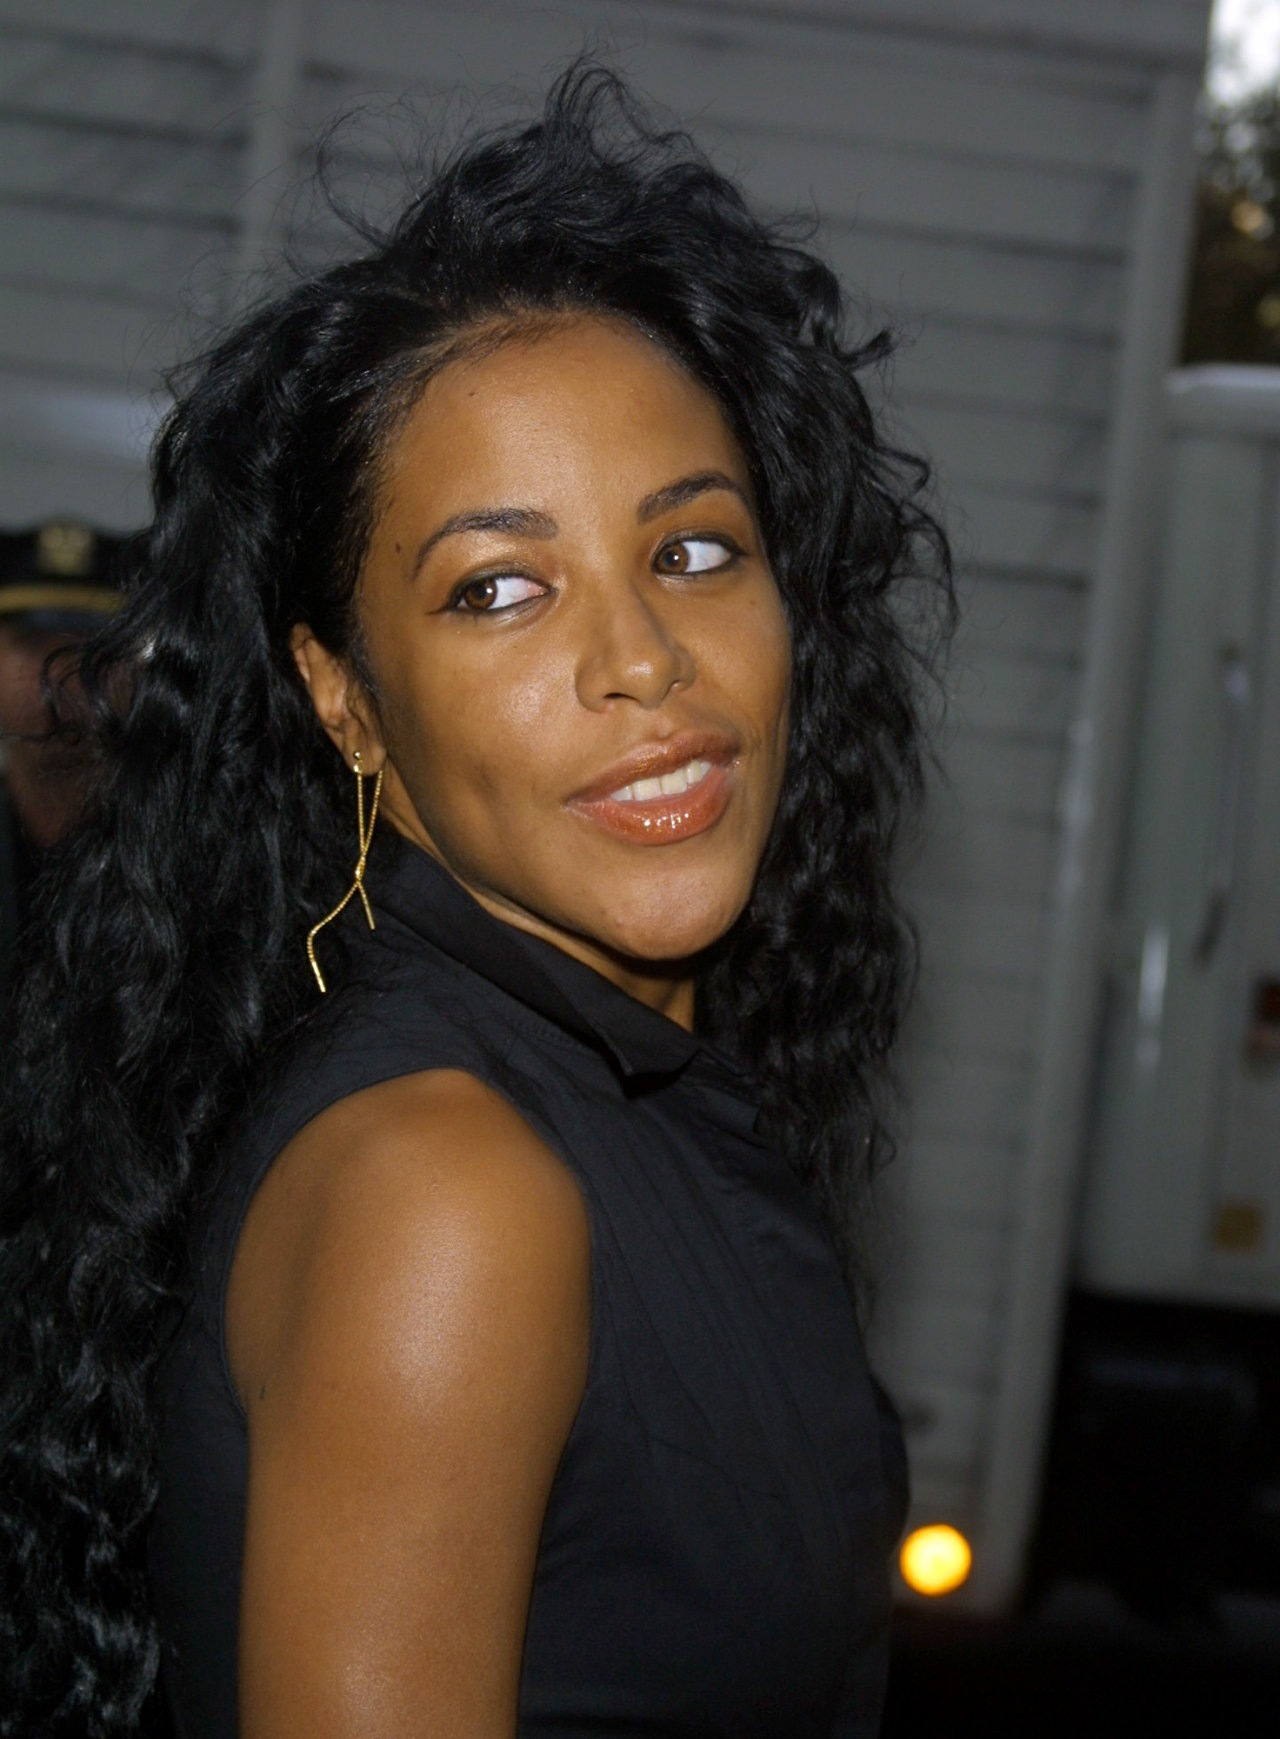 aaliyah wallpapers 25688 best aaliyah pictures